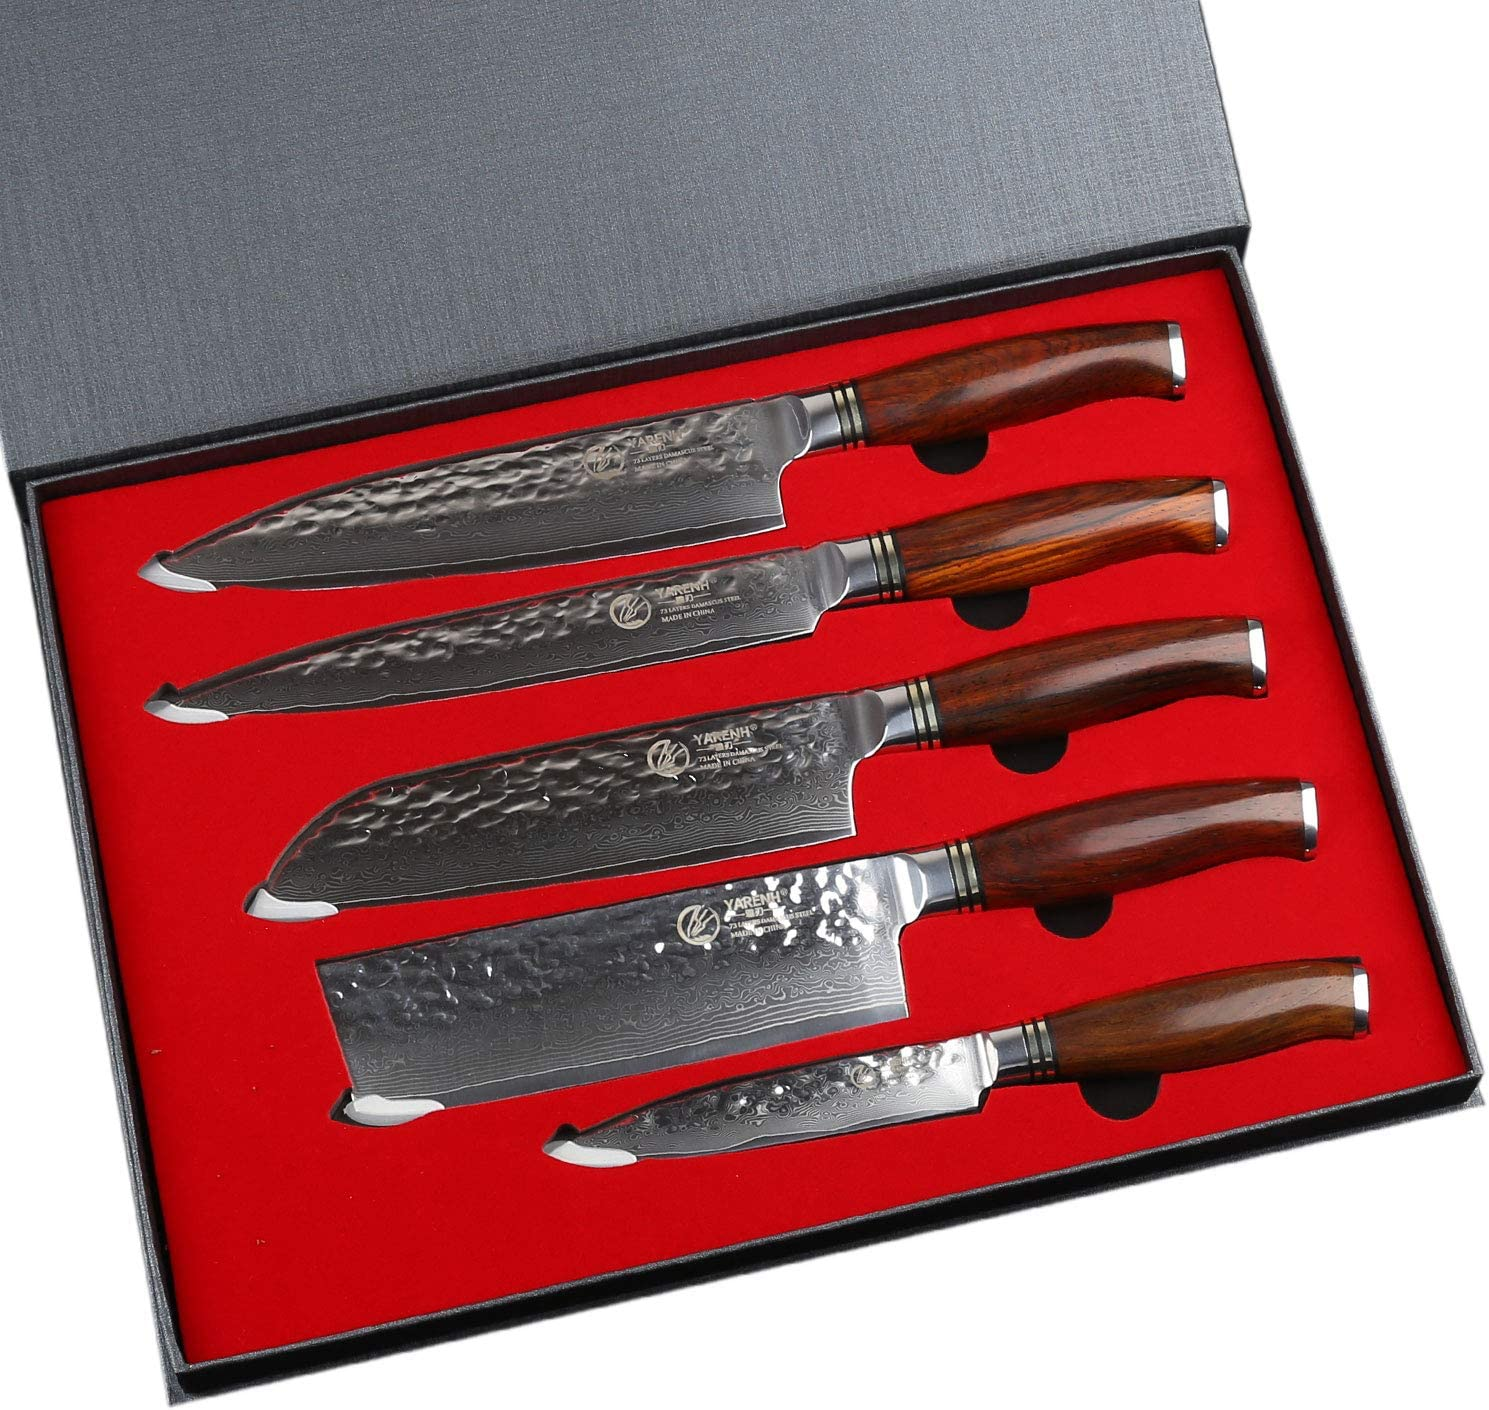 Amazon Com Kitchen Knife Set Professional 5 Piece Yarenh Best Chef Knife Set Damascus Stainless Steel Full Tang Galbergia Wood Handle Sharp Vegetable Knives Sets Htt Series Kitchen Dining